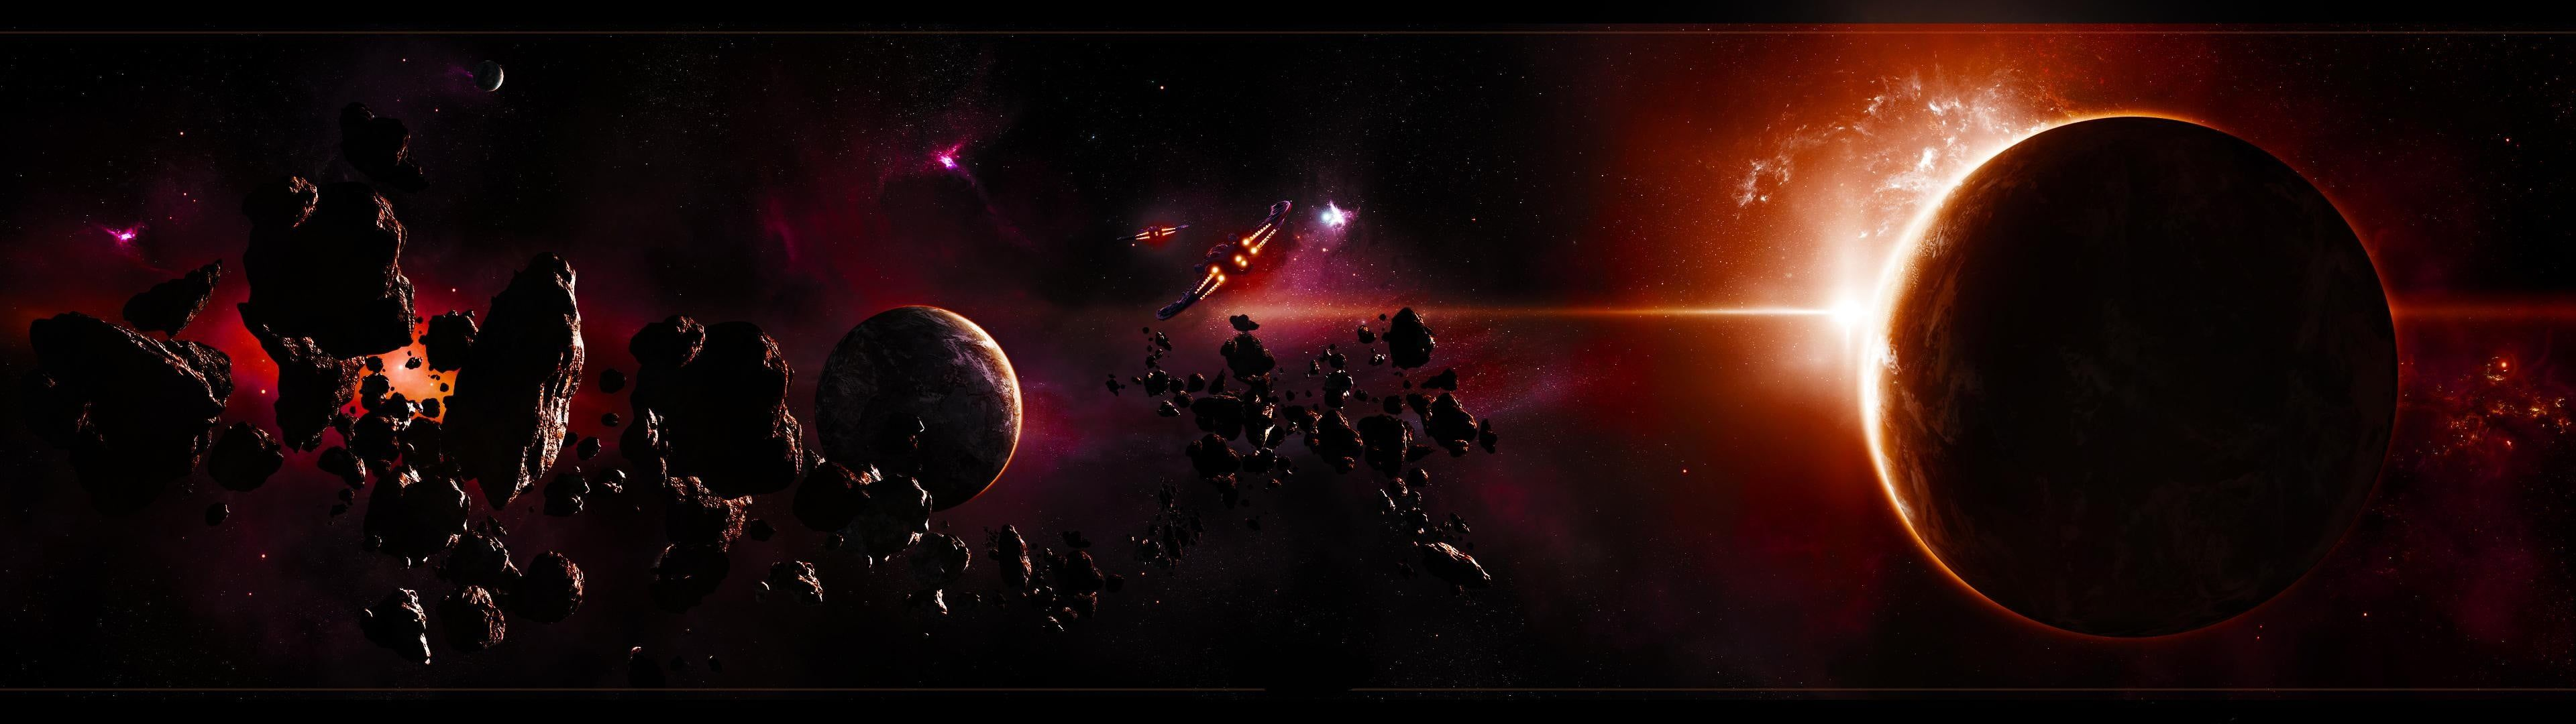 Black And Red Galaxy Illustration Space Spaceship Space Art Digital Art Science Fiction 4k Wallpaper Space Art Dual Monitor Wallpaper Space Art Wallpaper Dark souls dual monitor wallpaper